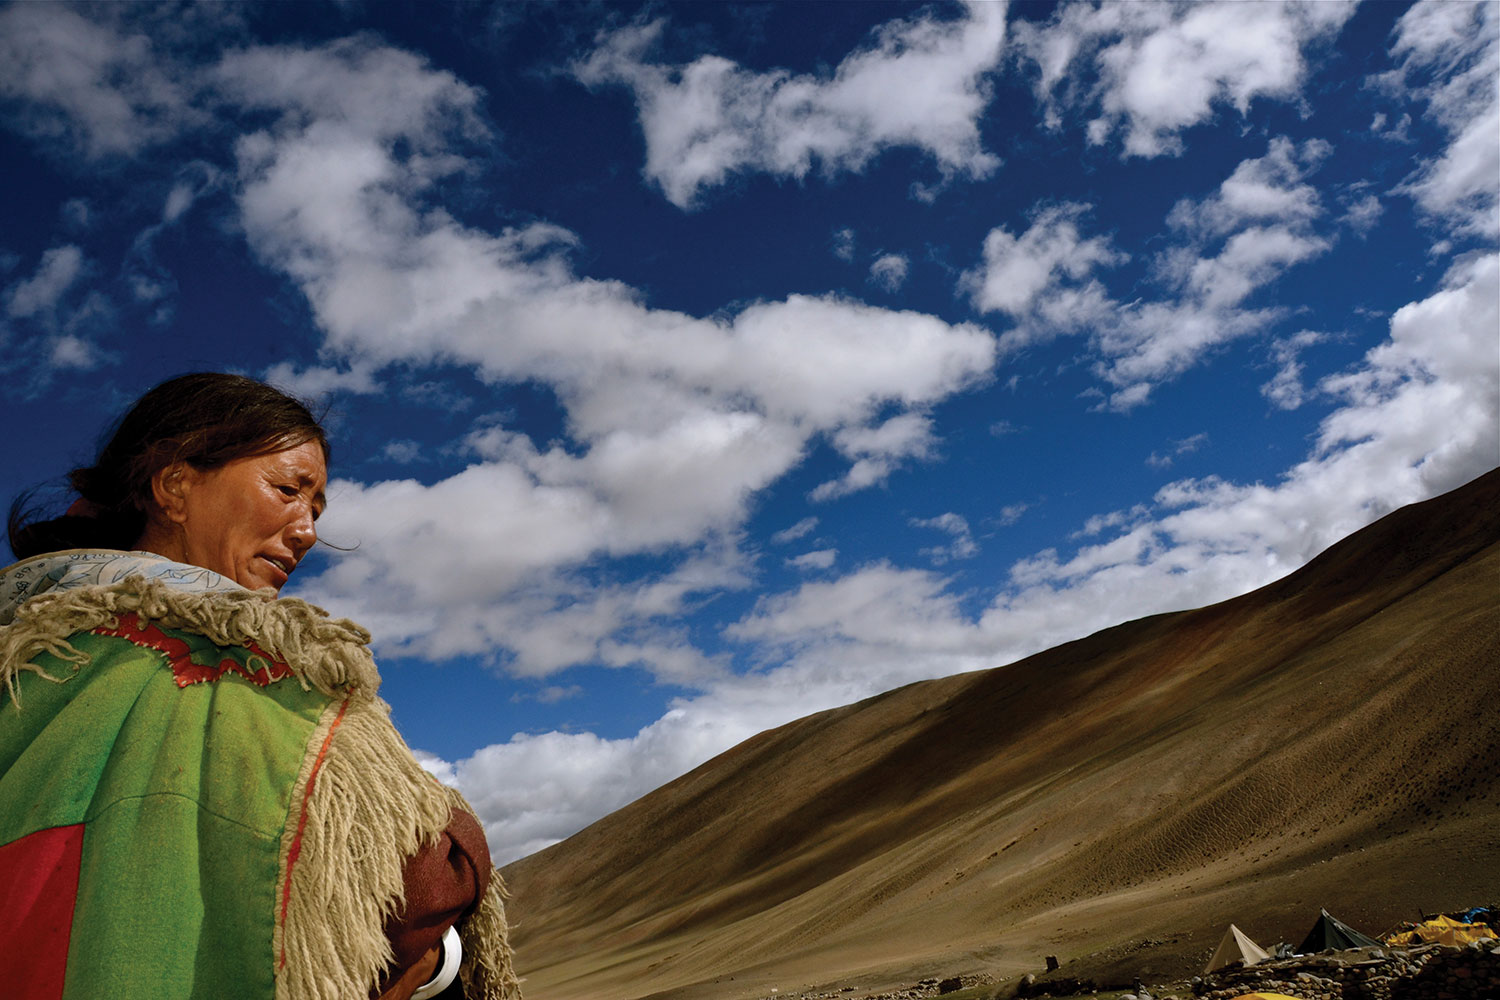 ladakh india travel story